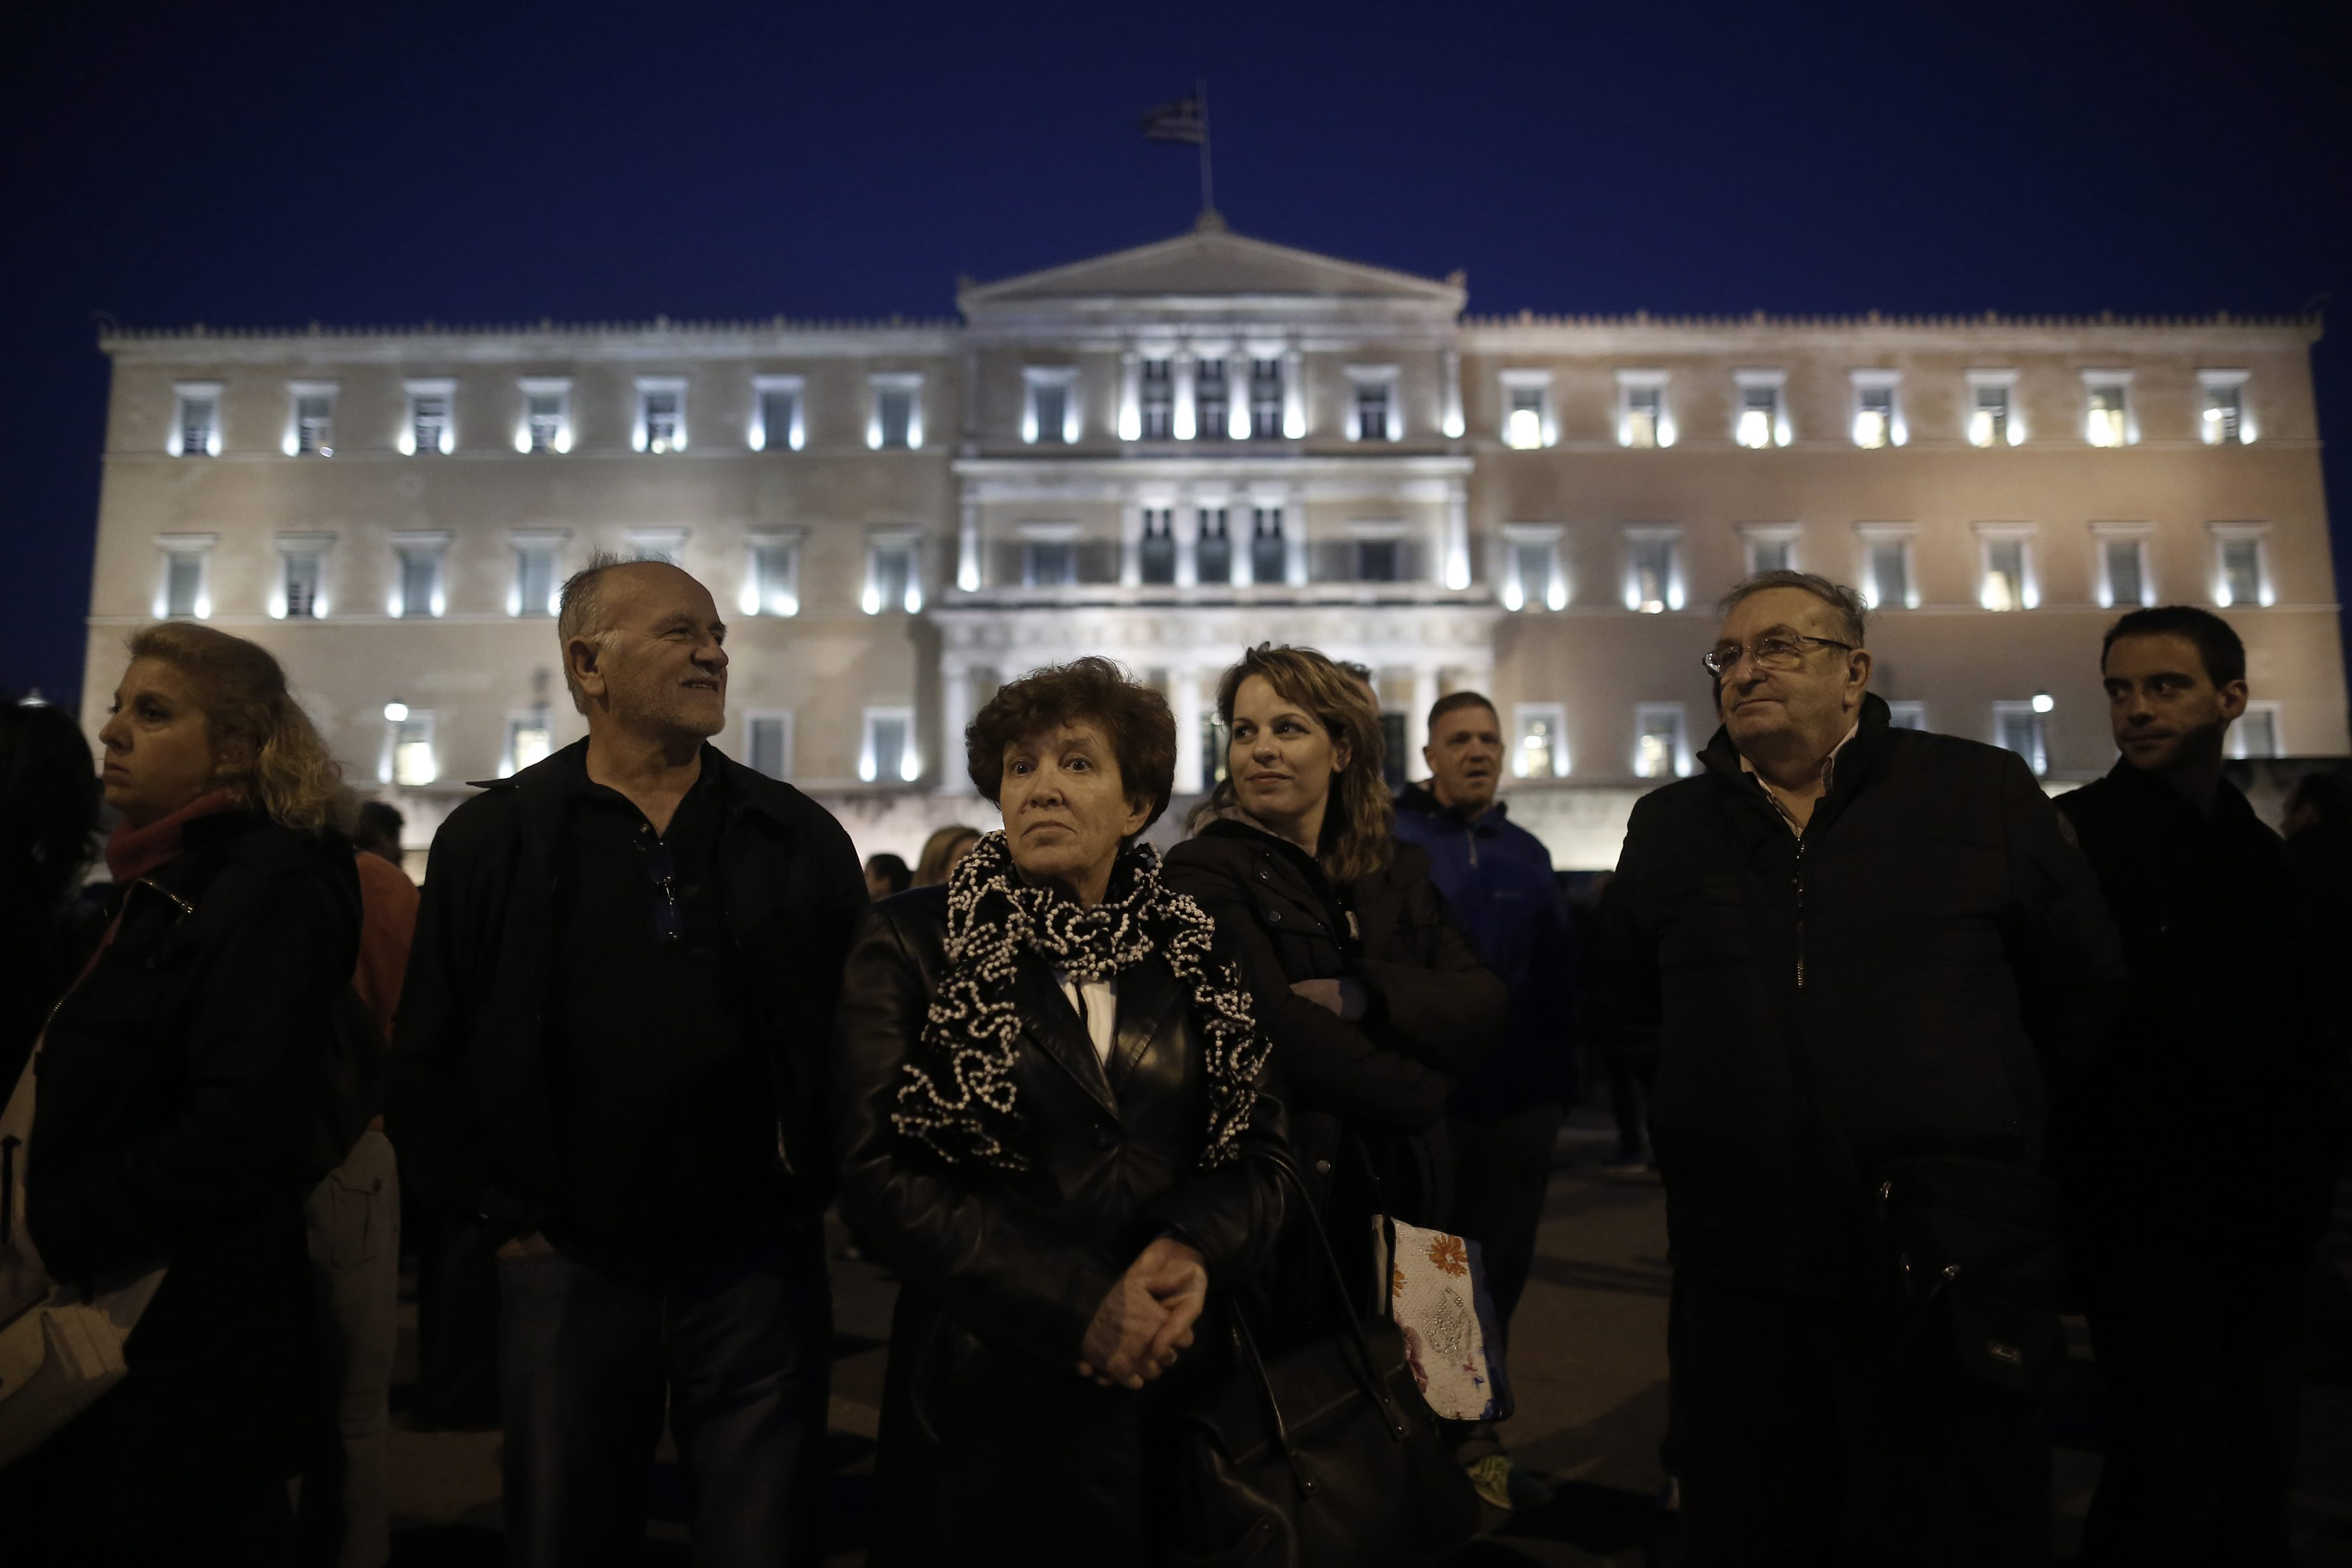 Silent protest in solidarity with the Greek government